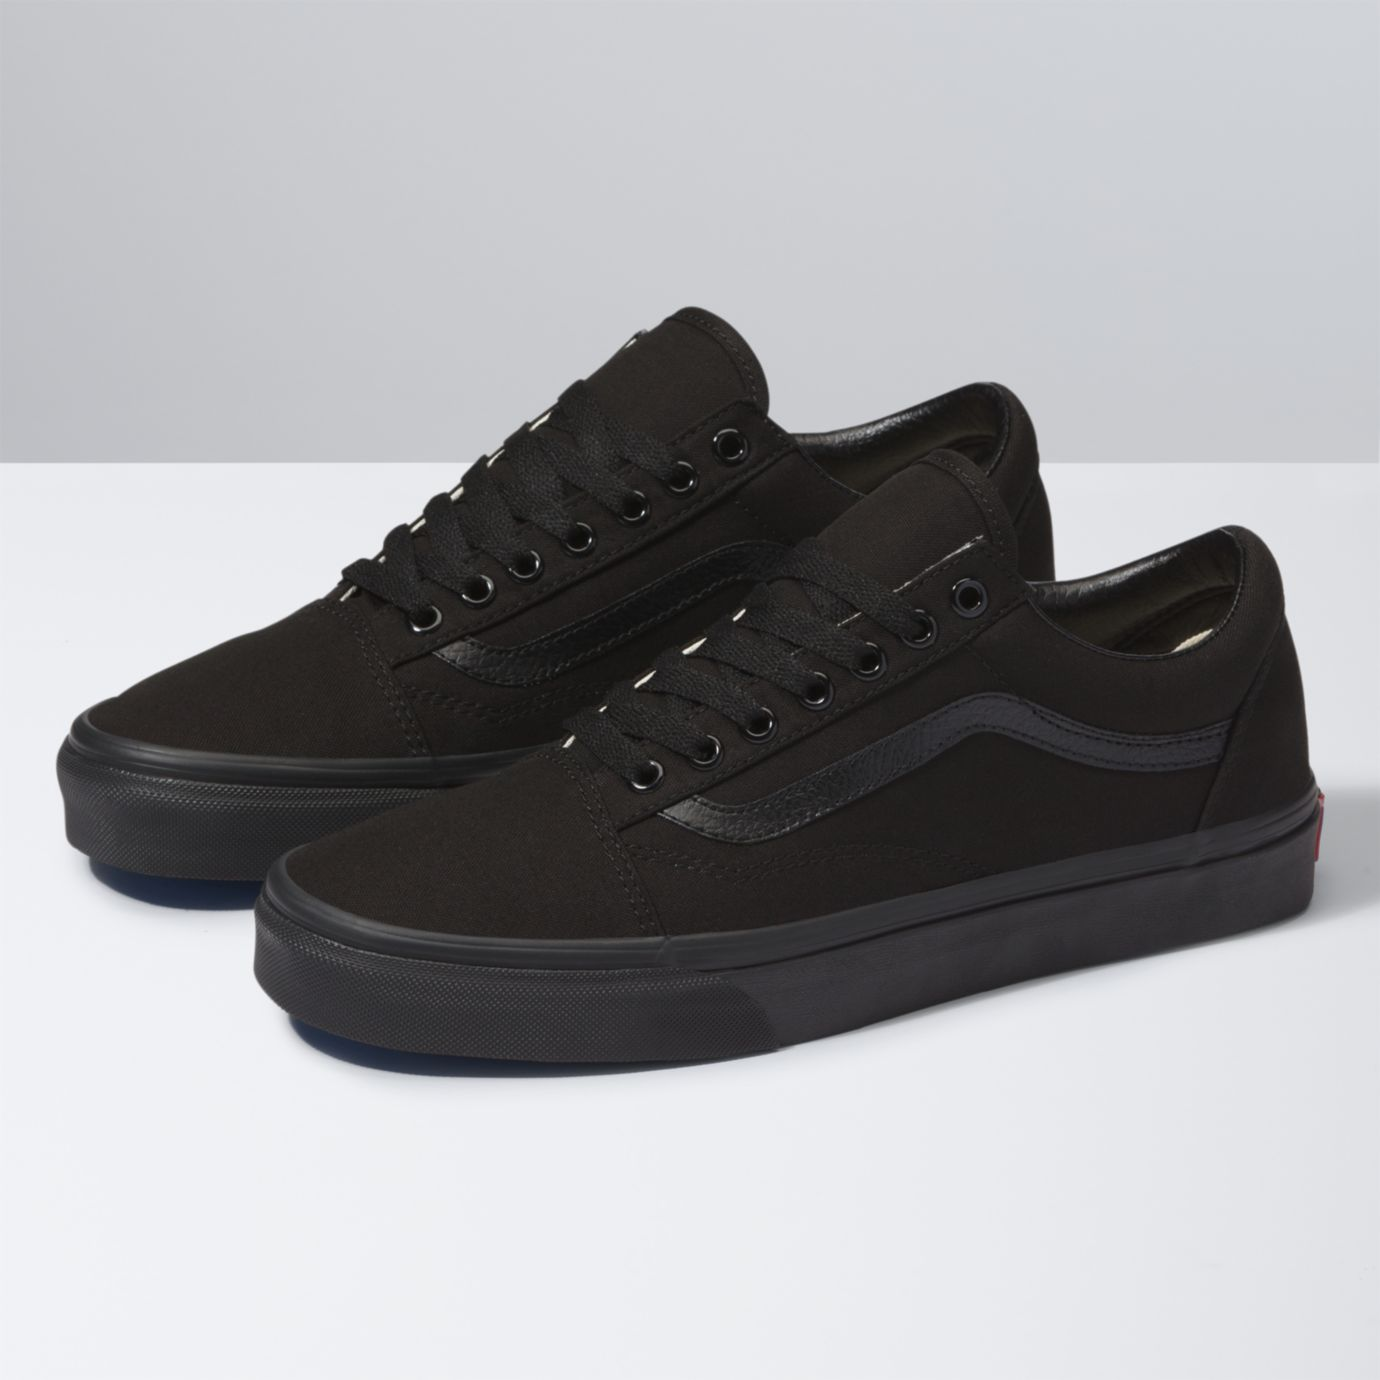 The Vans Old Skool Spring 2016 Collection